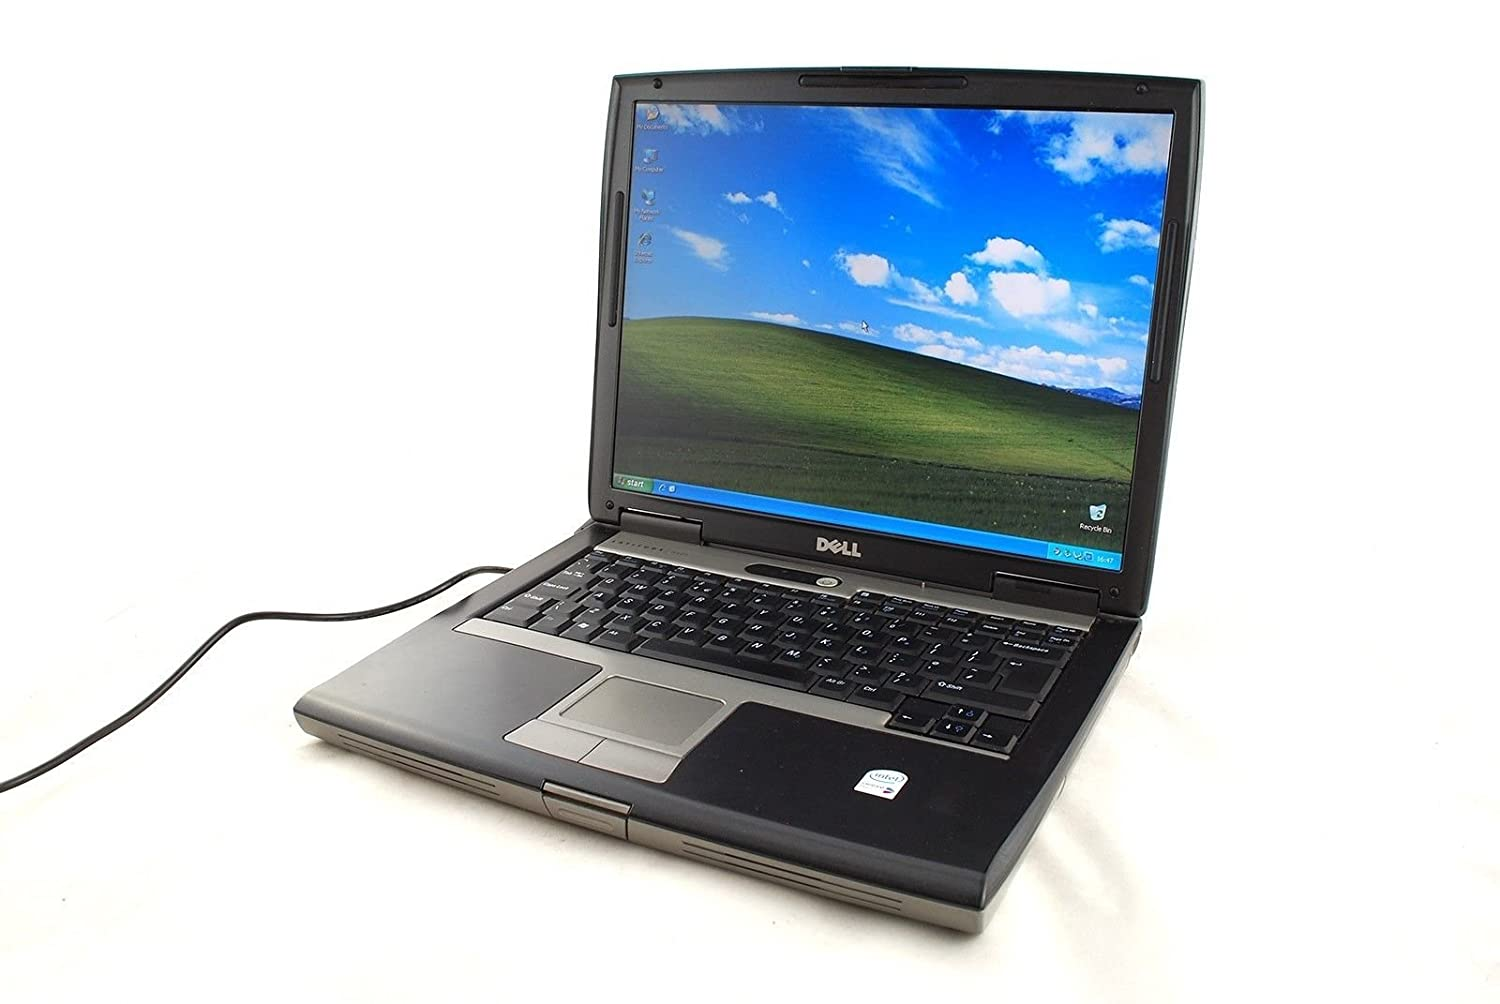 dell latitude d520 sound card driver